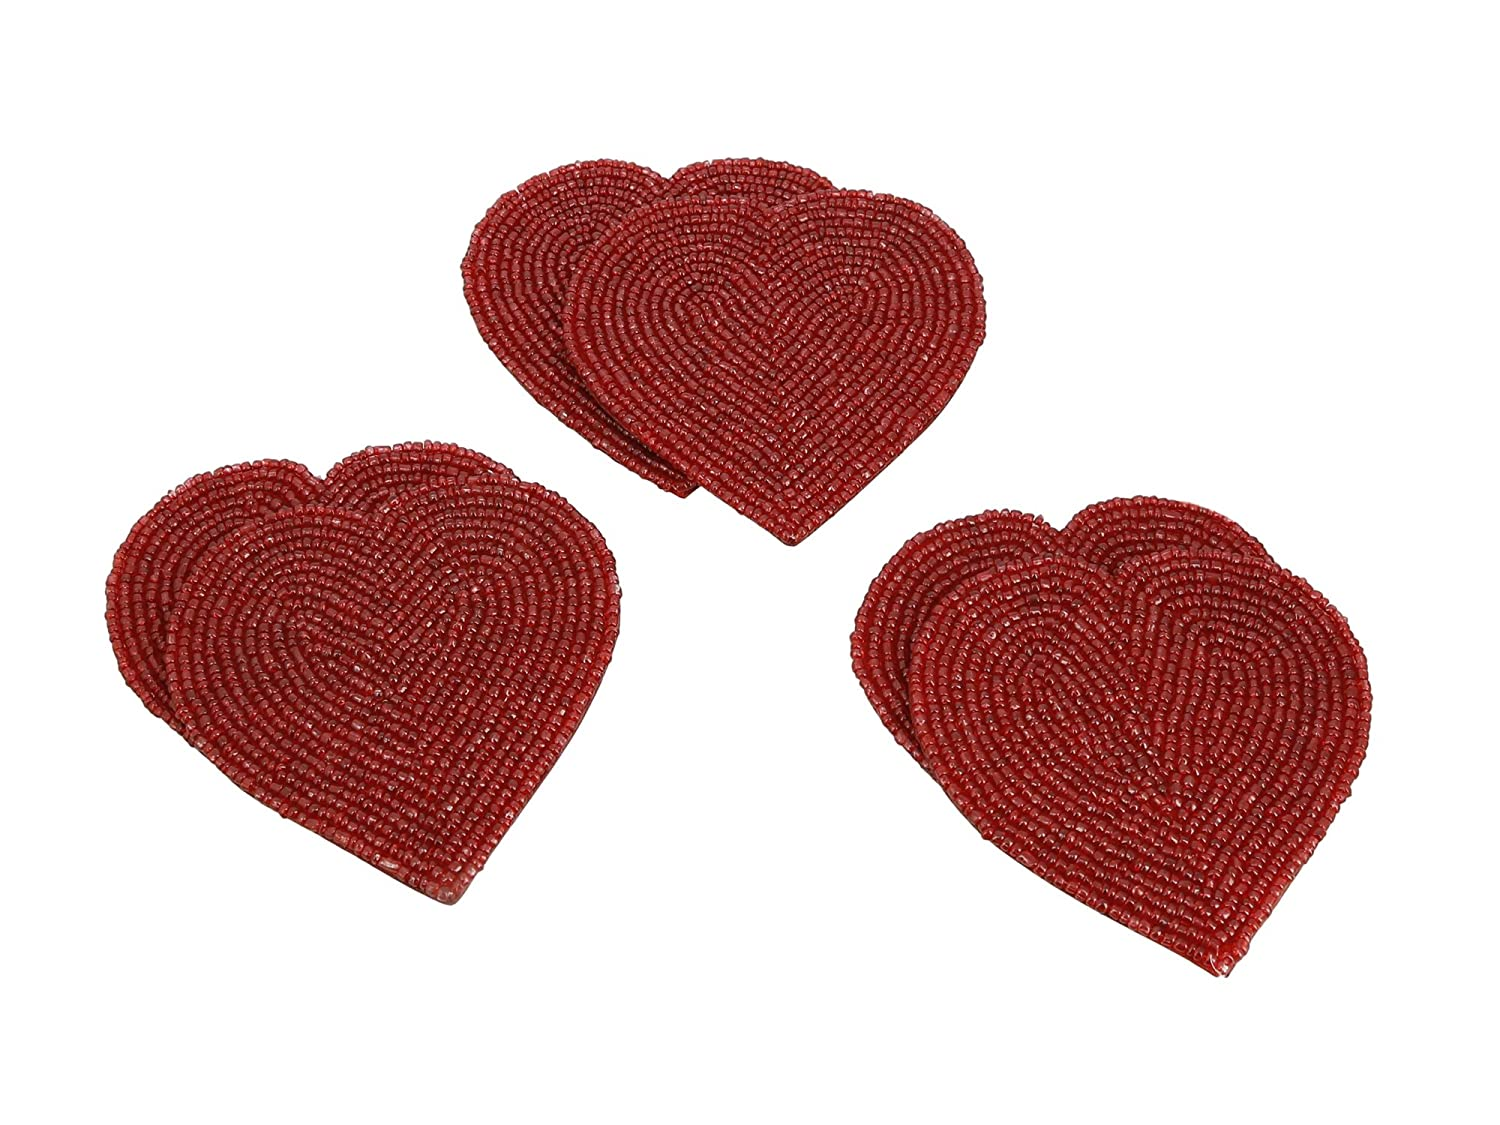 Heat-Resistant Polyester Backing /& Genuine Glass Beads ShalinCraft MN-ATSS/_TCRHR 4 Coasters Heat-Resistant Polyester Backing /& Genuine Glass Beads 4 Coasters Handmade Beaded Heart Coaster Set With 6 Red